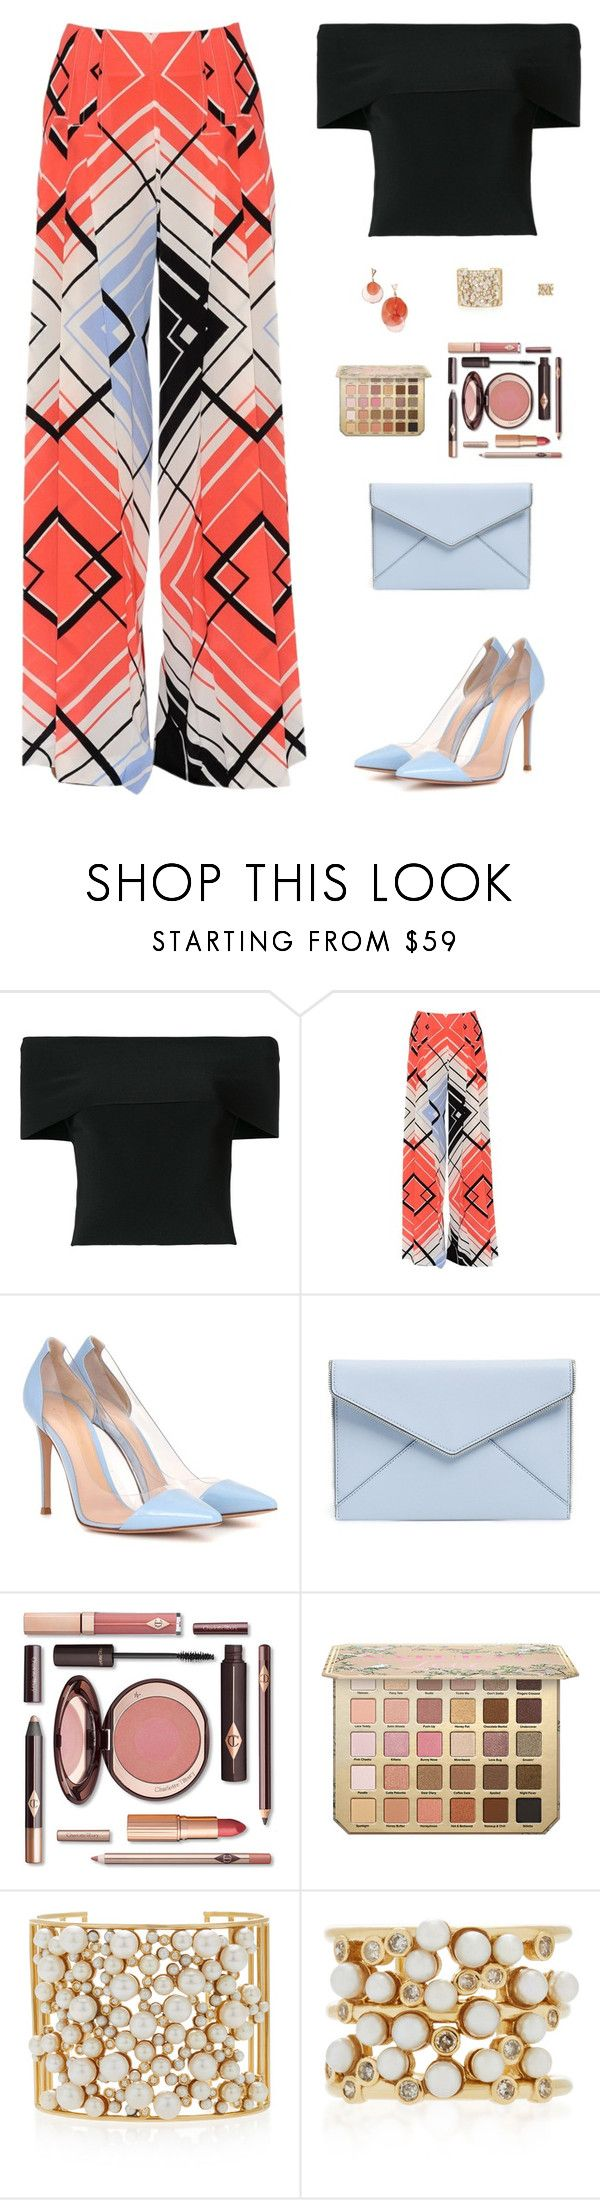 """""""Sin título #4902"""" by mdmsb ❤ liked on Polyvore featuring T By Alexander Wang, Capucci, Gianvito Rossi, Rebecca Minkoff and Nancy Newberg"""